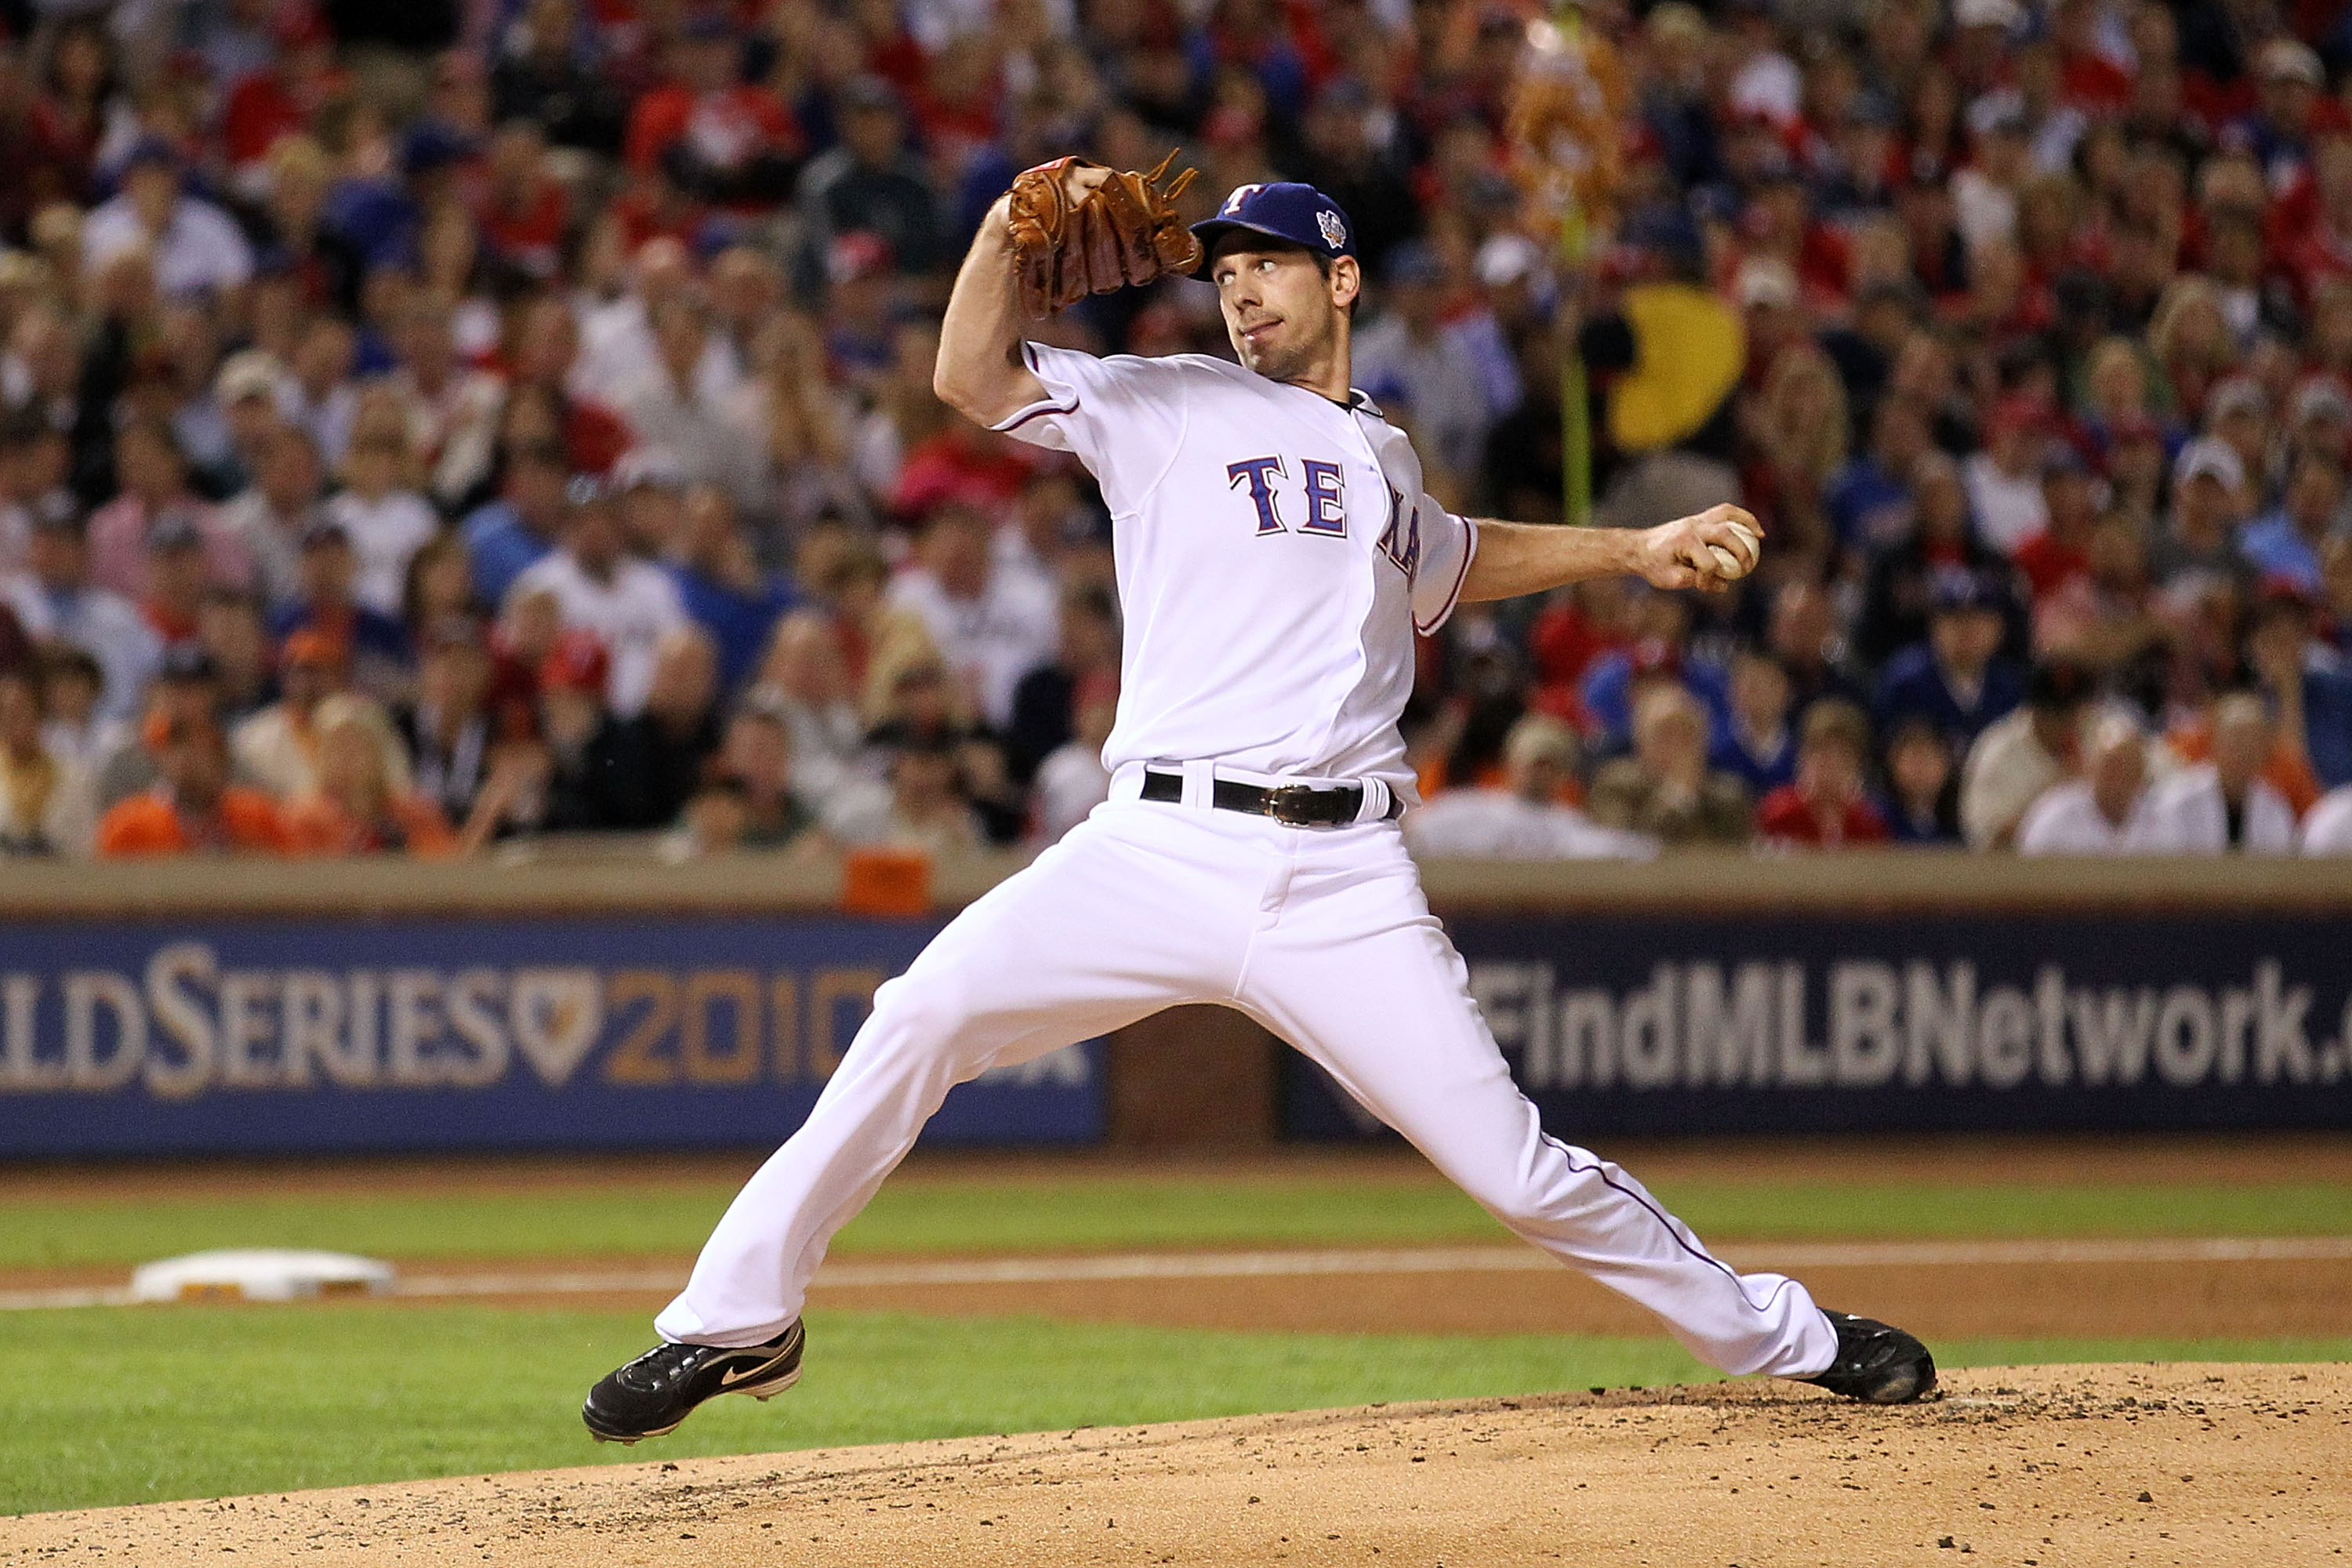 ARLINGTON, TX - NOVEMBER 01:  Cliff Lee #33 of the Texas Rangers pitches against the San Francisco Giants in Game Five of the 2010 MLB World Series at Rangers Ballpark in Arlington on November 1, 2010 in Arlington, Texas.  (Photo by Ronald Martinez/Getty